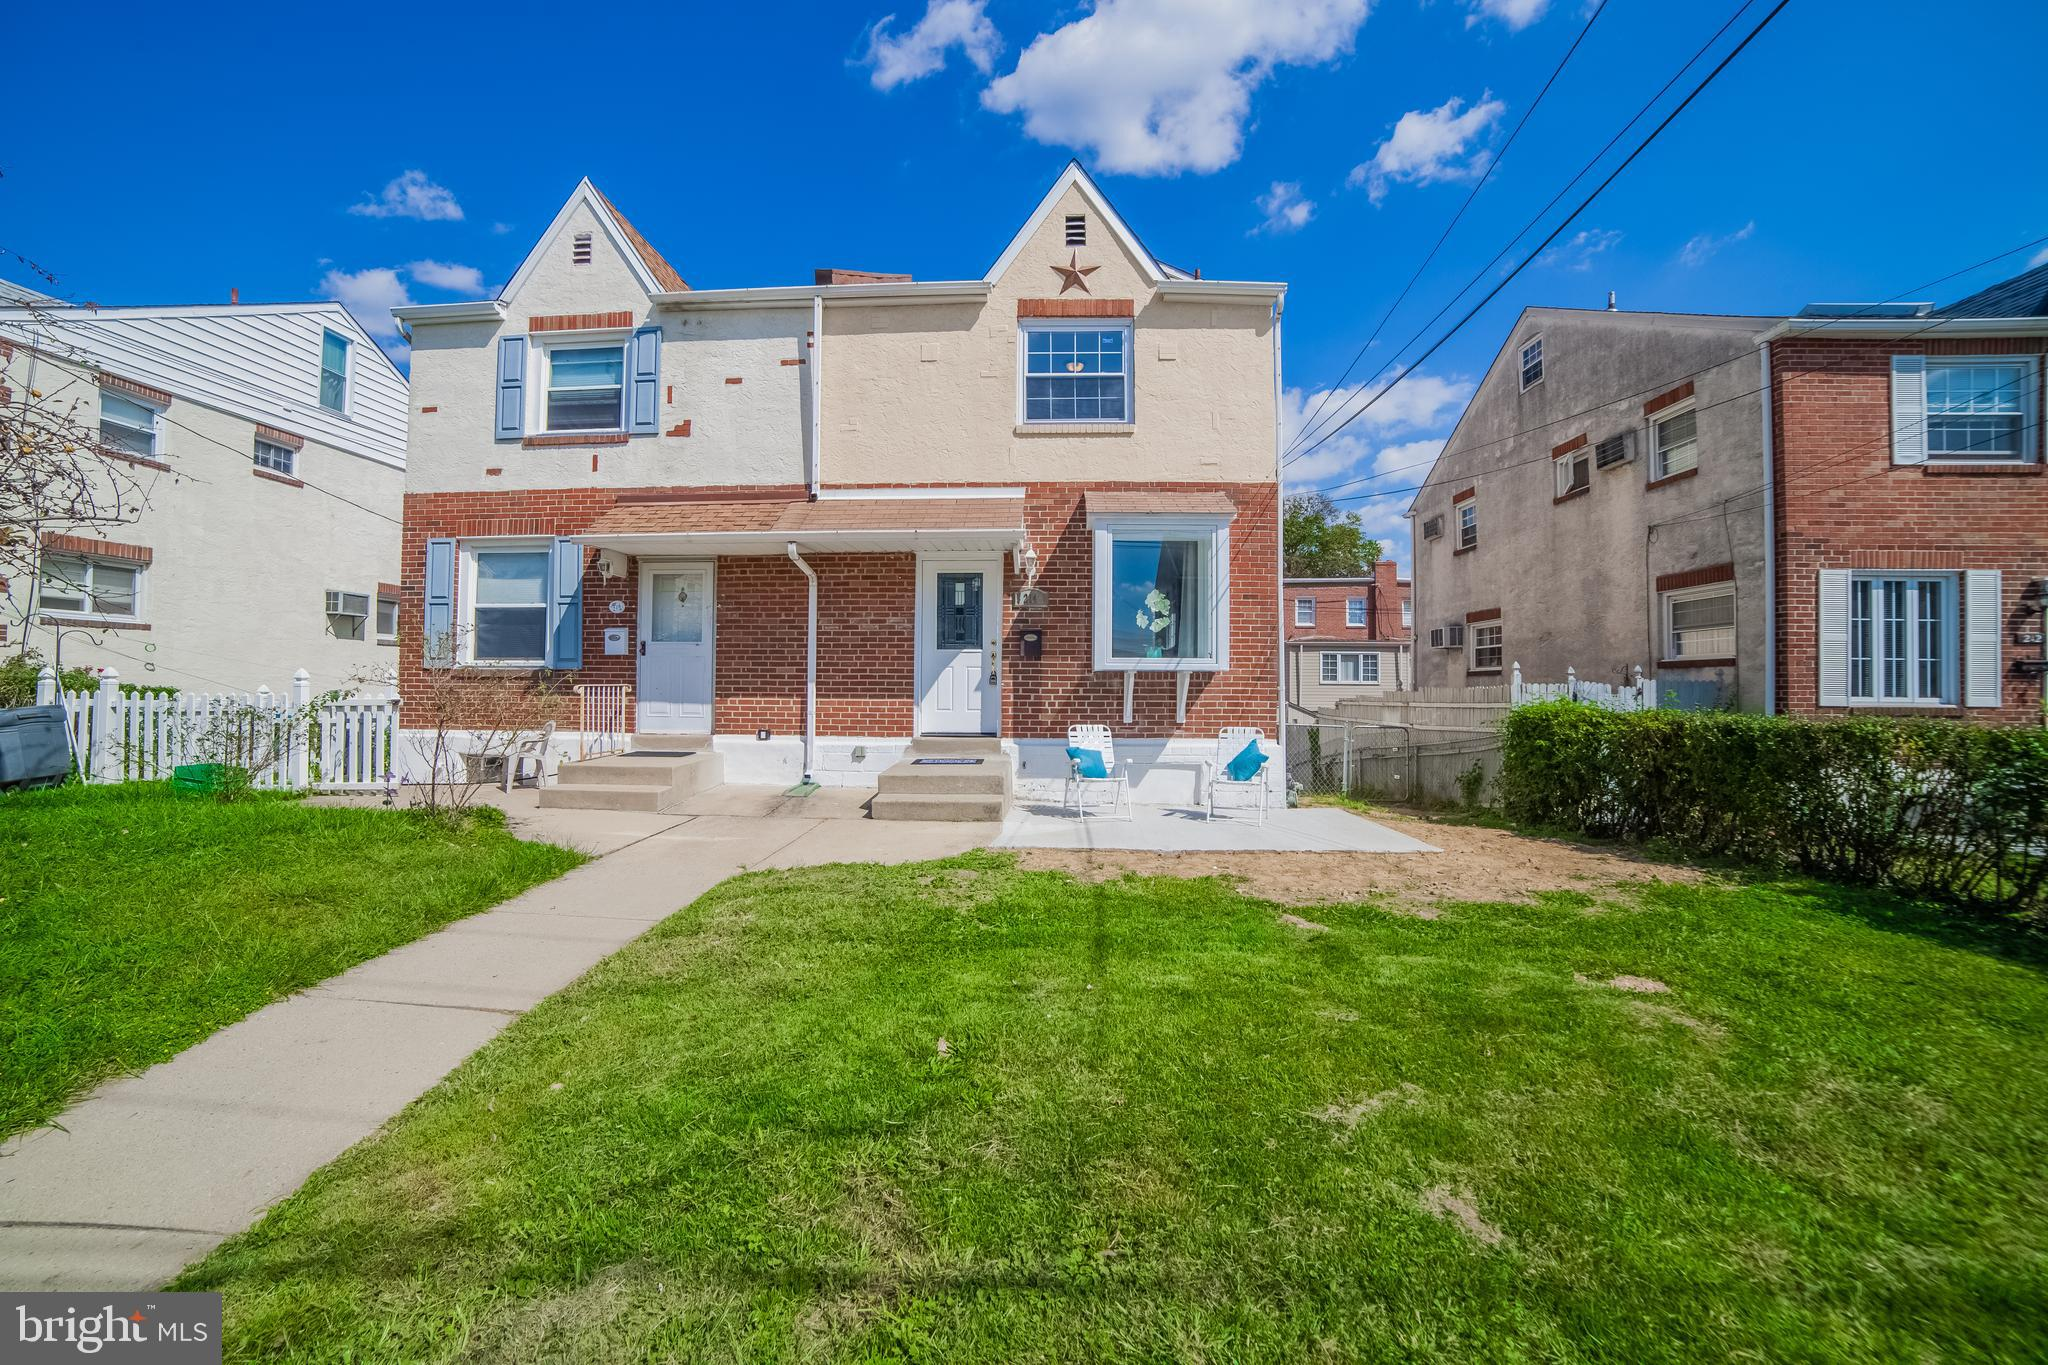 214 WILLOWBROOK AVENUE, FOLSOM, PA 19033